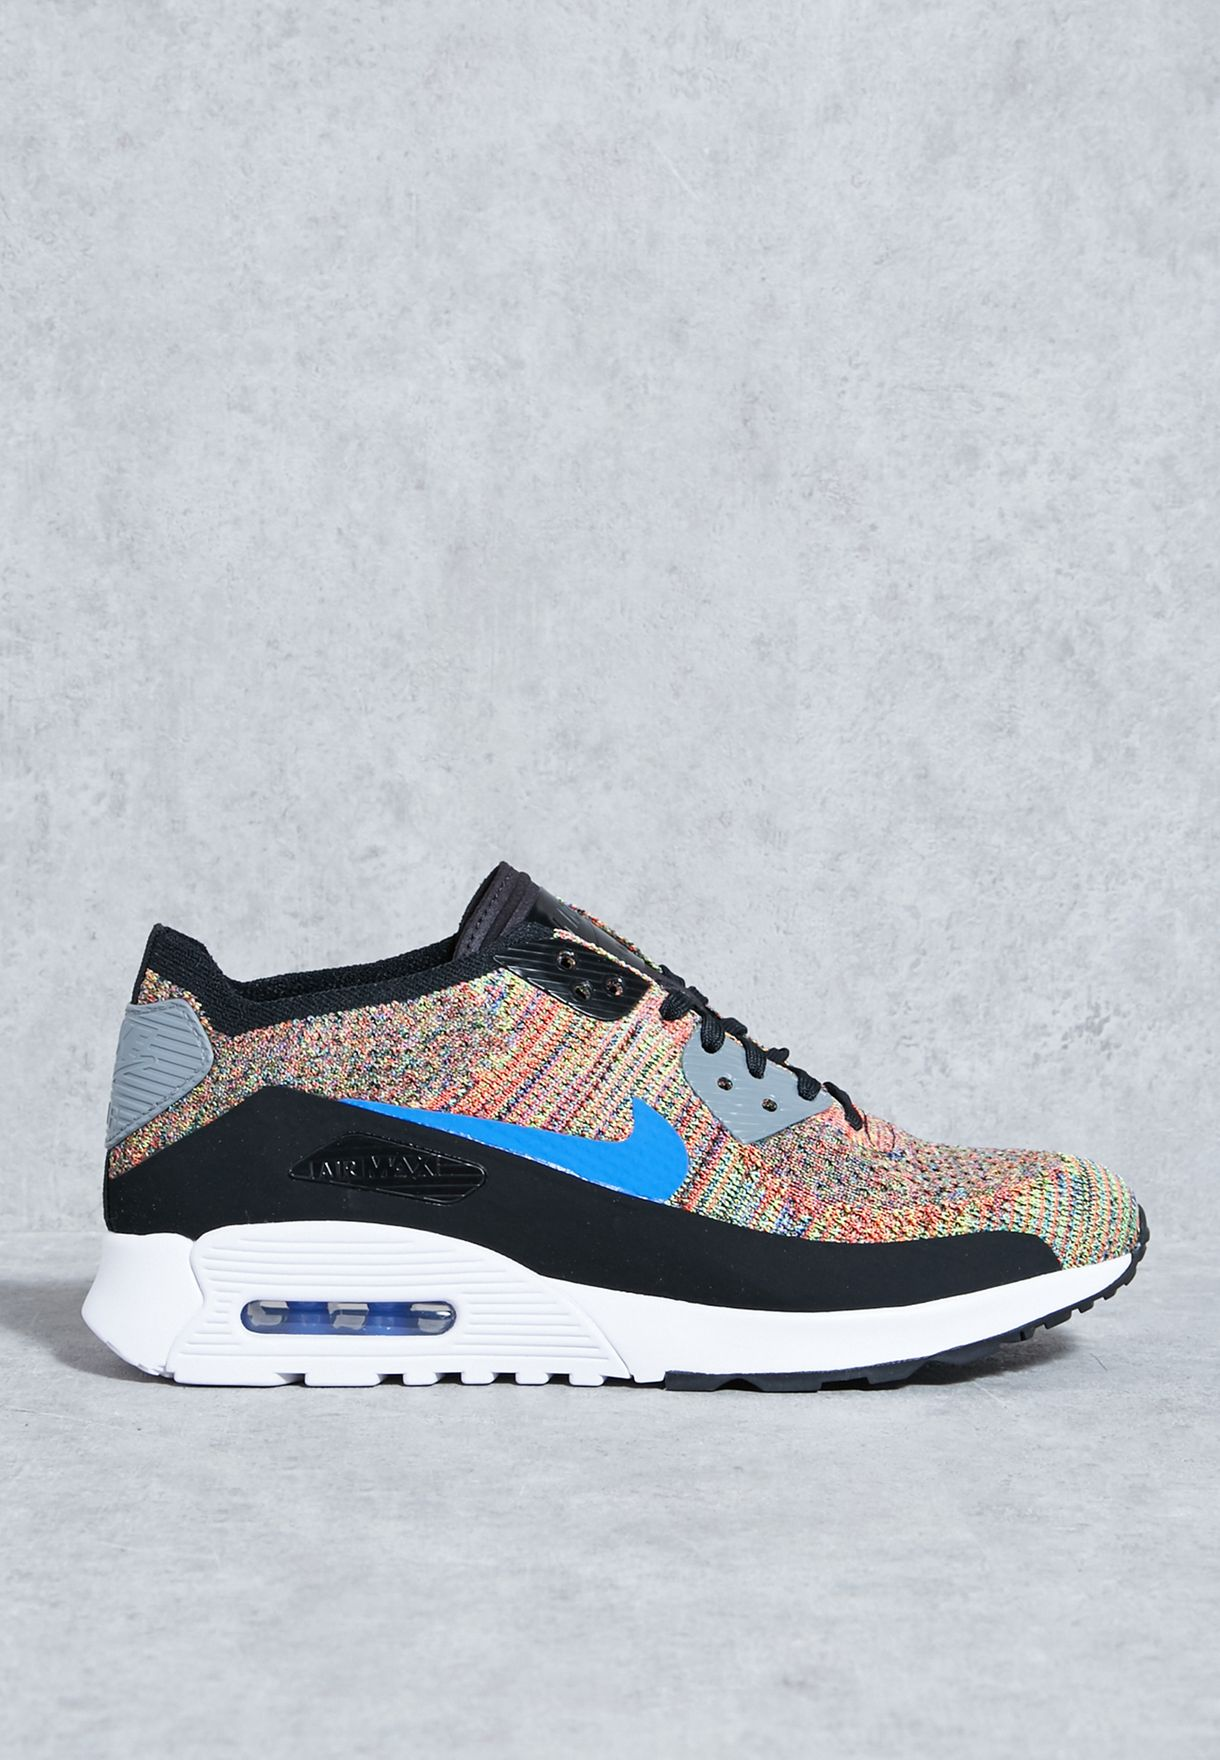 9c0821eb559f5 Shop Nike multicolor Air Max 90 Ultra 2.0 Flyknit 881109-001 for ...